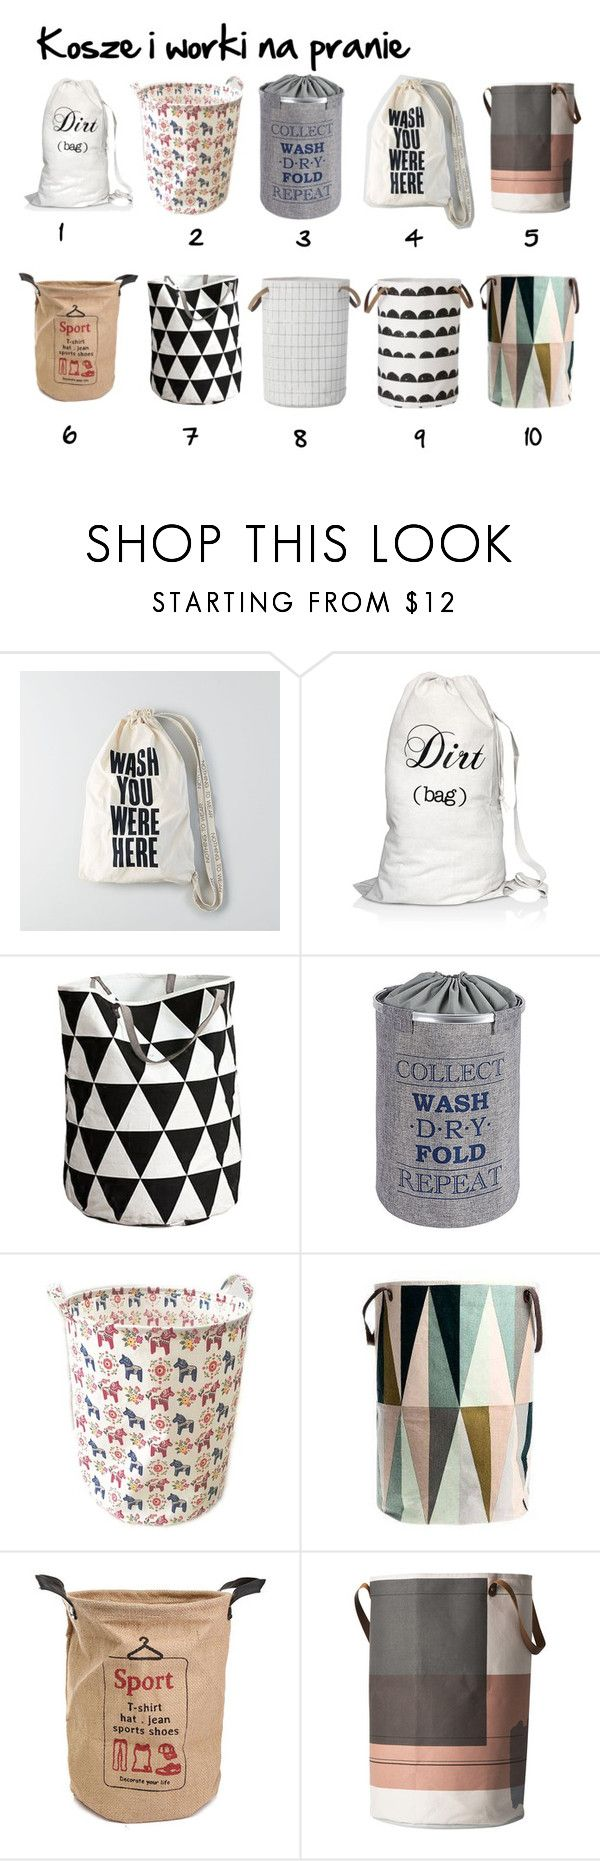 """laundry day :)"" by izostworekblogspot on Polyvore featuring interior, interiors, interior design, dom, home decor, interior decorating, American Eagle Outfitters, Bag-All i ferm LIVING"